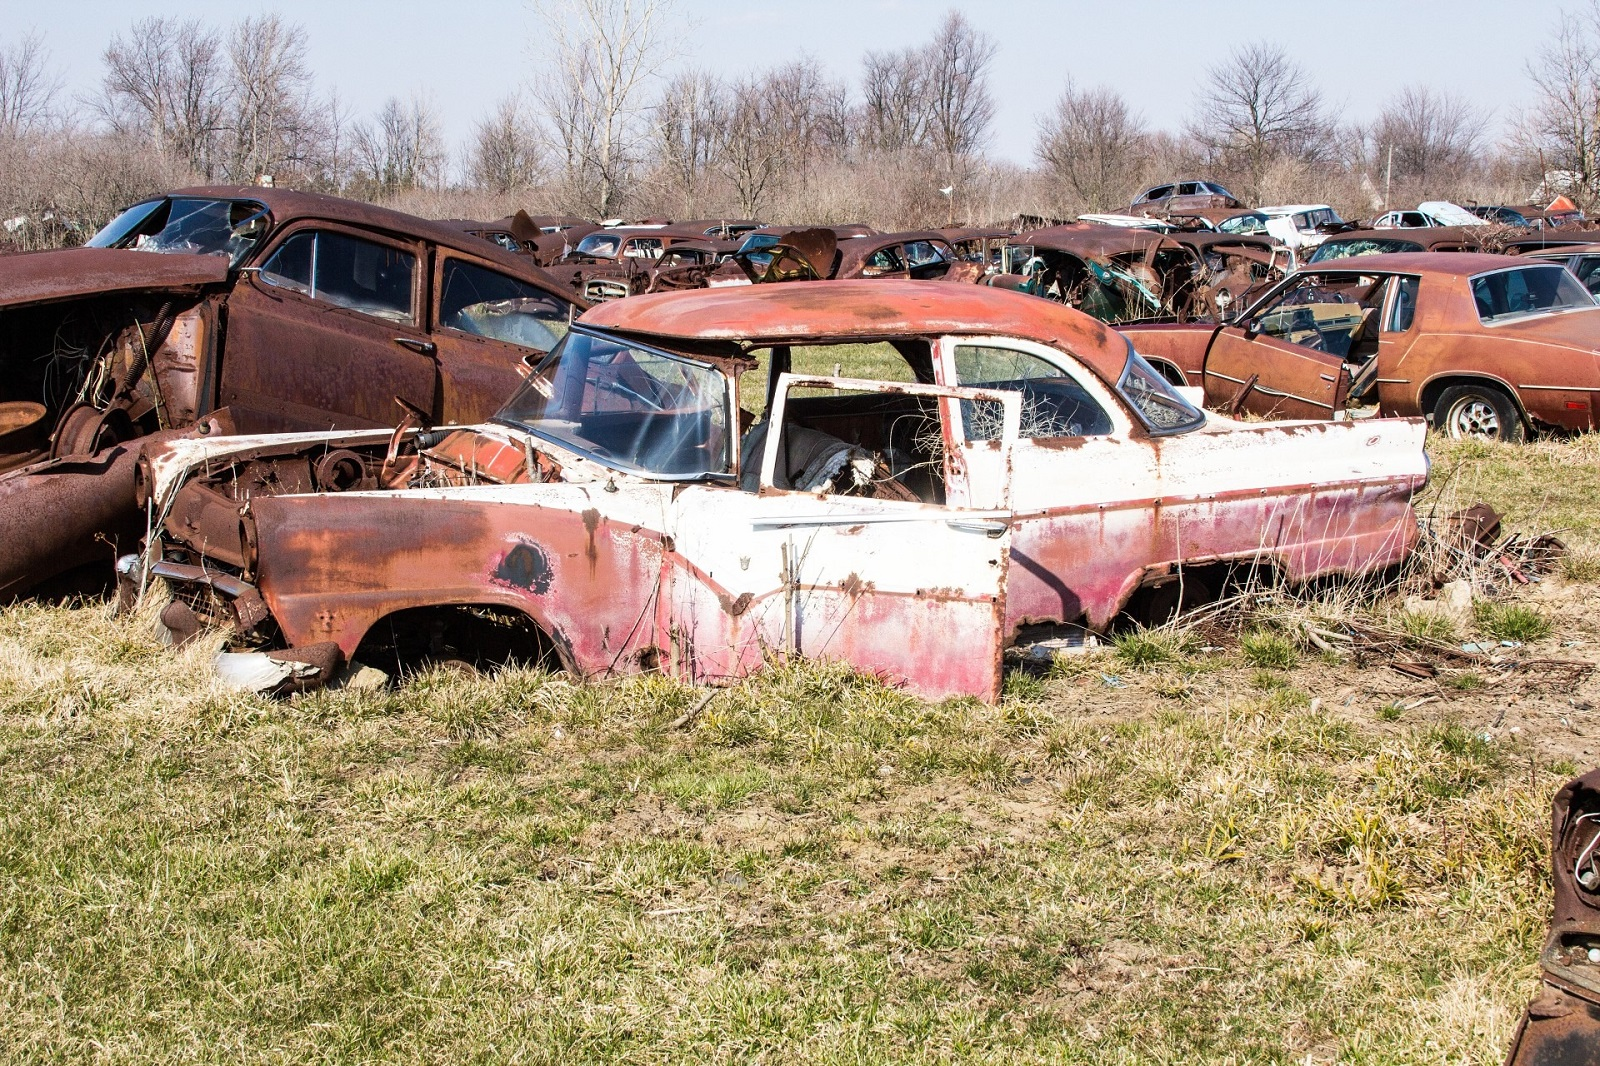 Junk american car in JunkYard